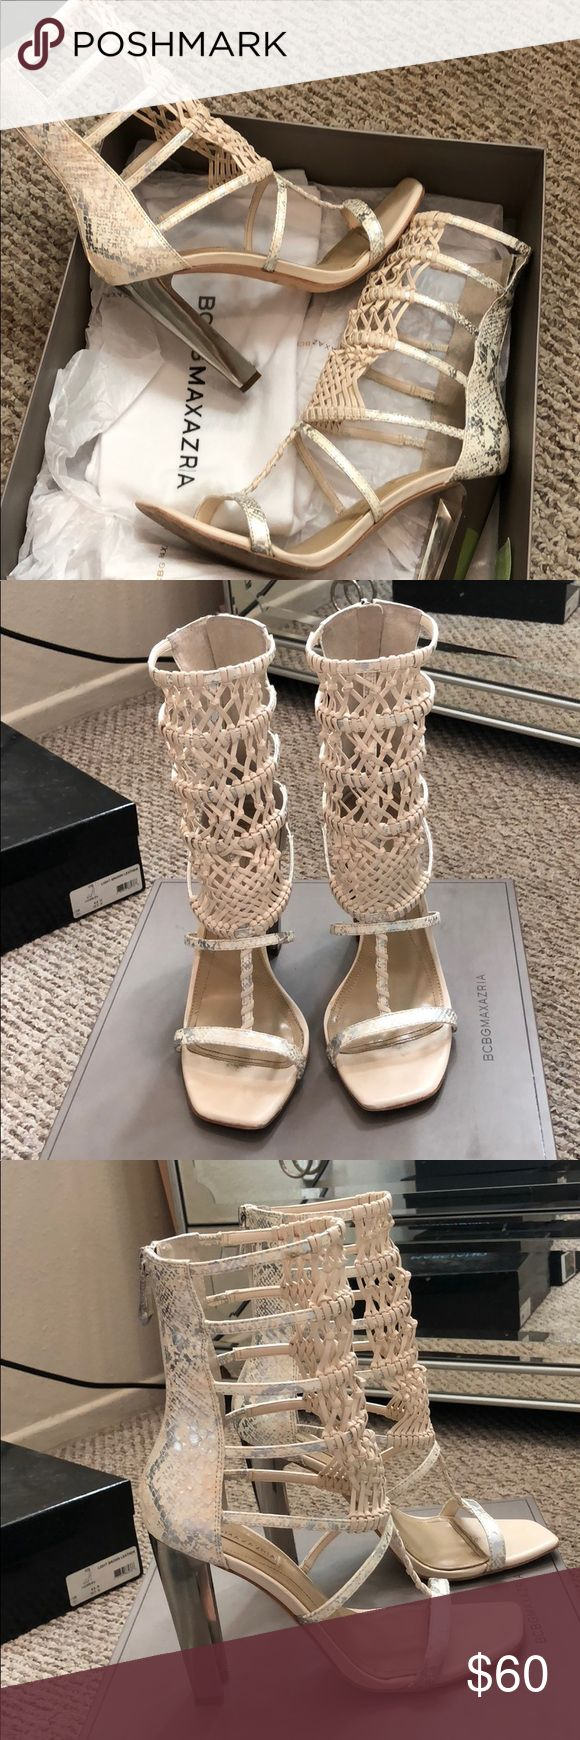 BCBG MAXAZRIA Caged sandal Super cute caged sandal with macrame detail and silver chunky heel. Zipper in back of heel. Genuine leather. Original box included. NO TRADES BCBGMaxAzria Shoes Sandals